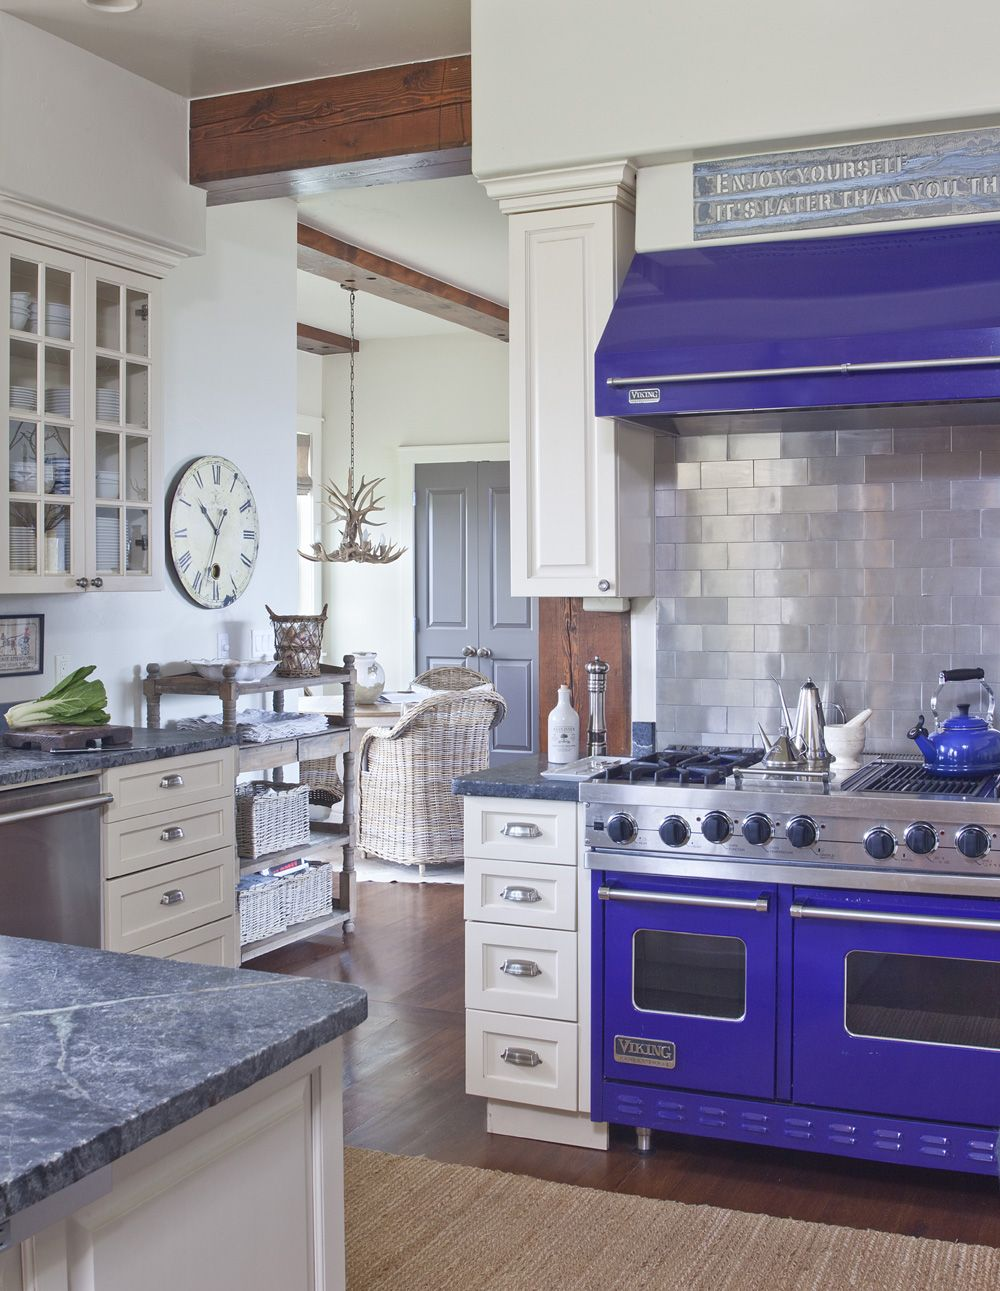 Awesome cobalt Viking stove! Kitchen is pretty awesome as well!